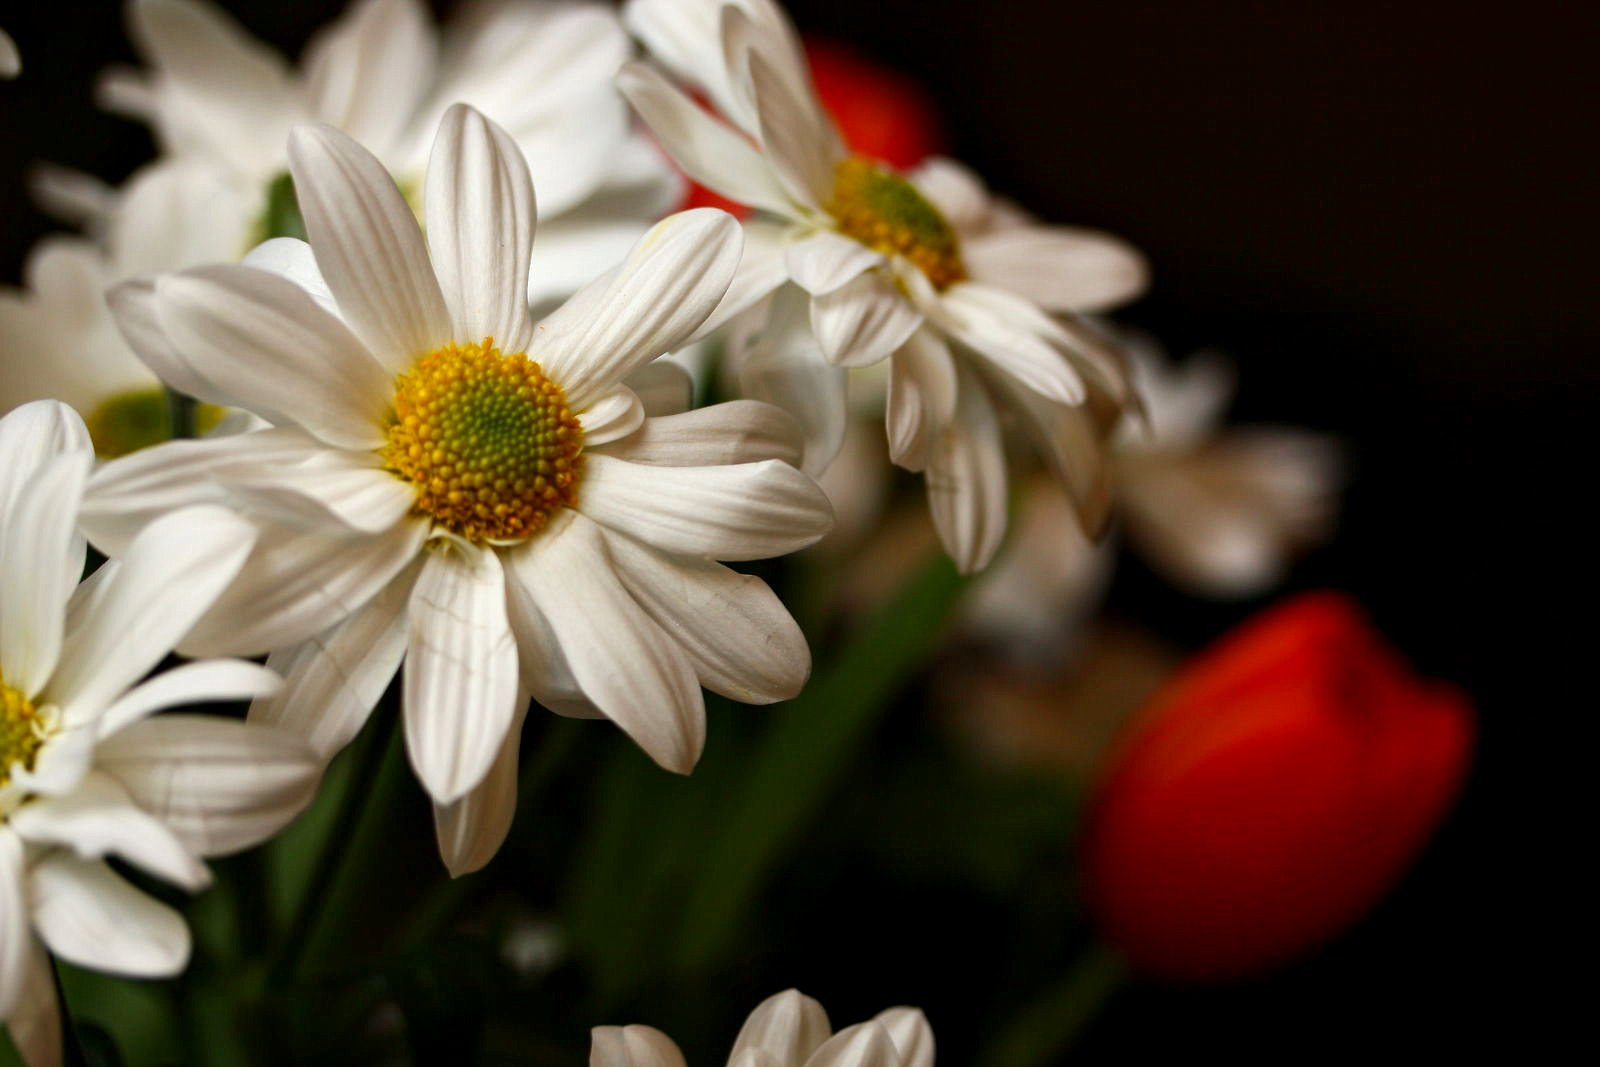 Photograph Spring Flowers by Mark Prince on 500px